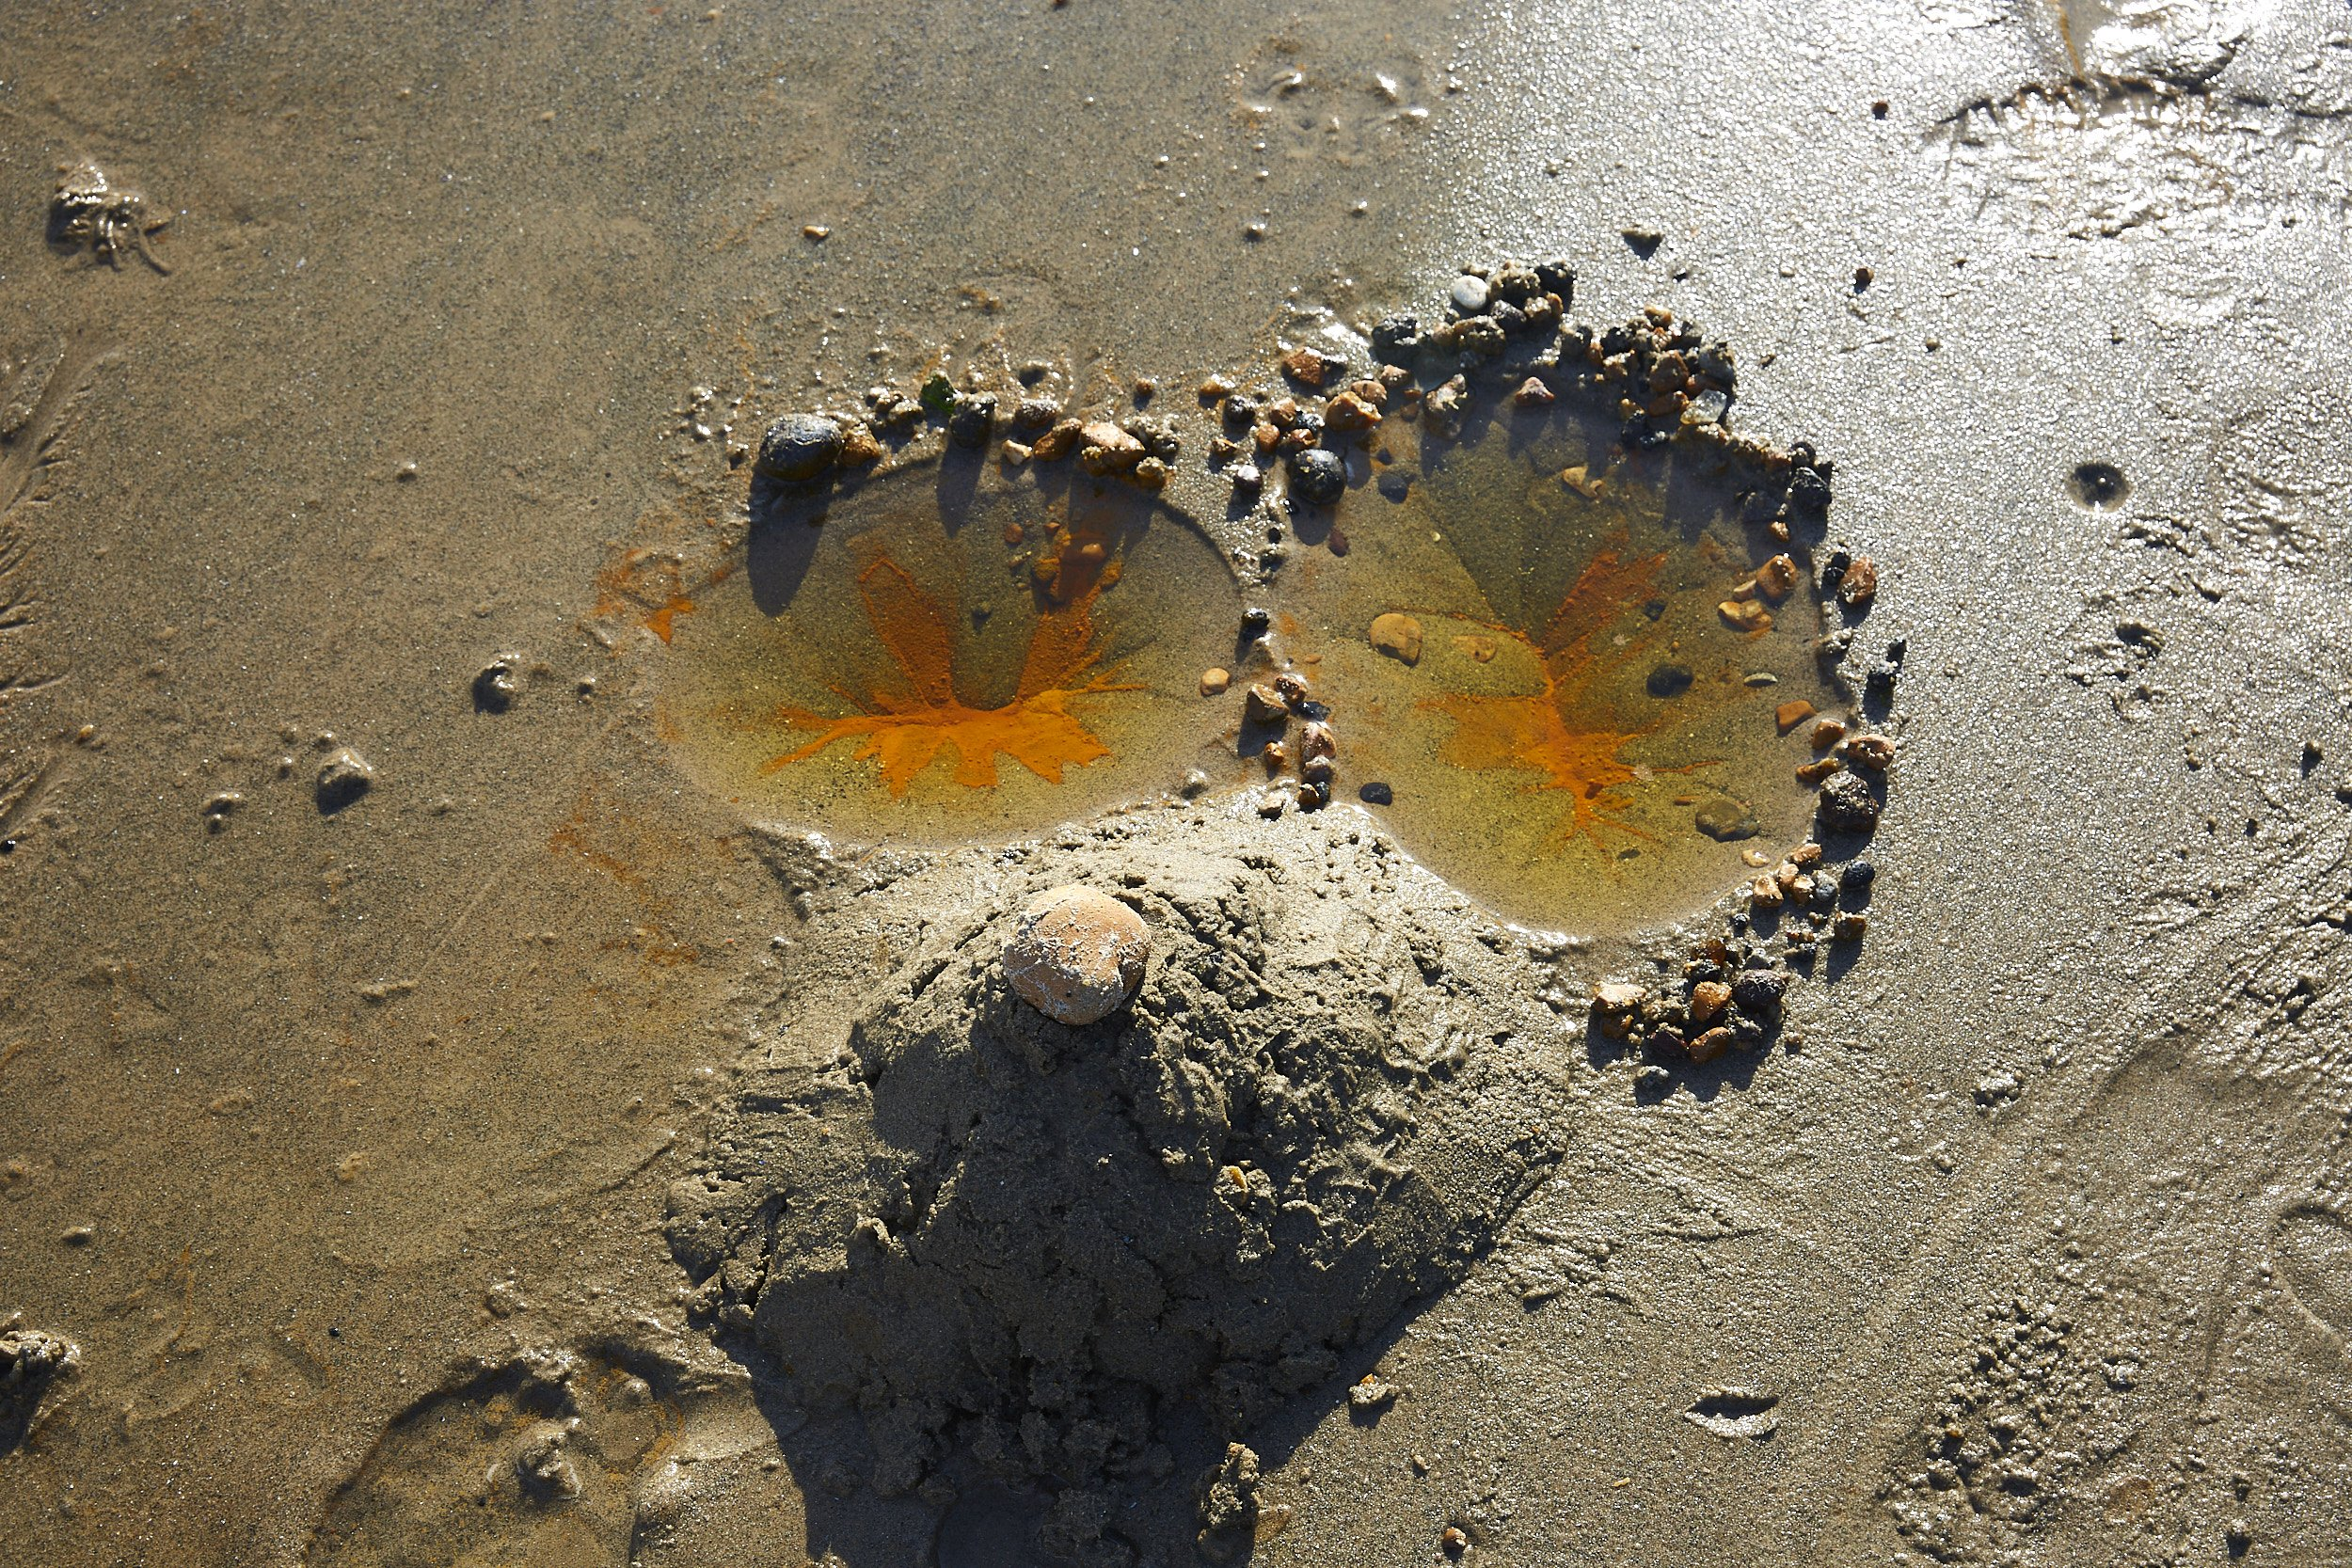 Two circular depressions in wet sand surrounded by pebbles. The centre of each depression has rusty red sand, and below them as a small mound of sand with a rock atop it.